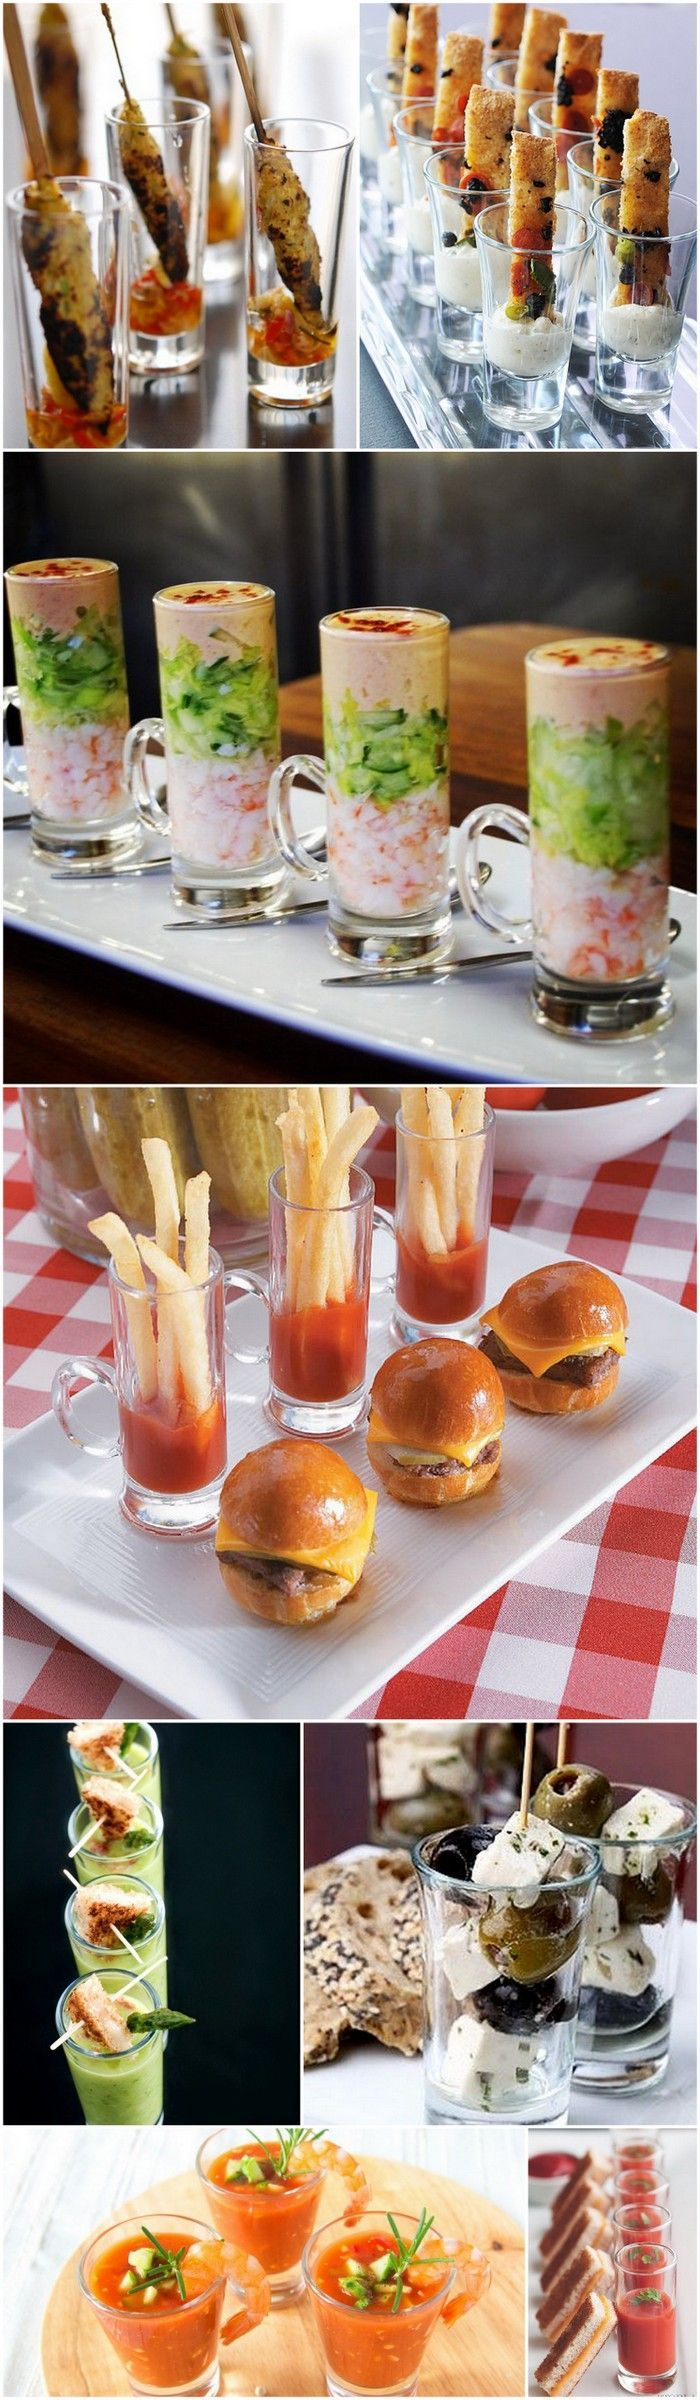 wedding reception dinner ideas on budget%0A Wedding Canap   Ideas  Canap  s in Shot Glasses  South African Wedding  Venues